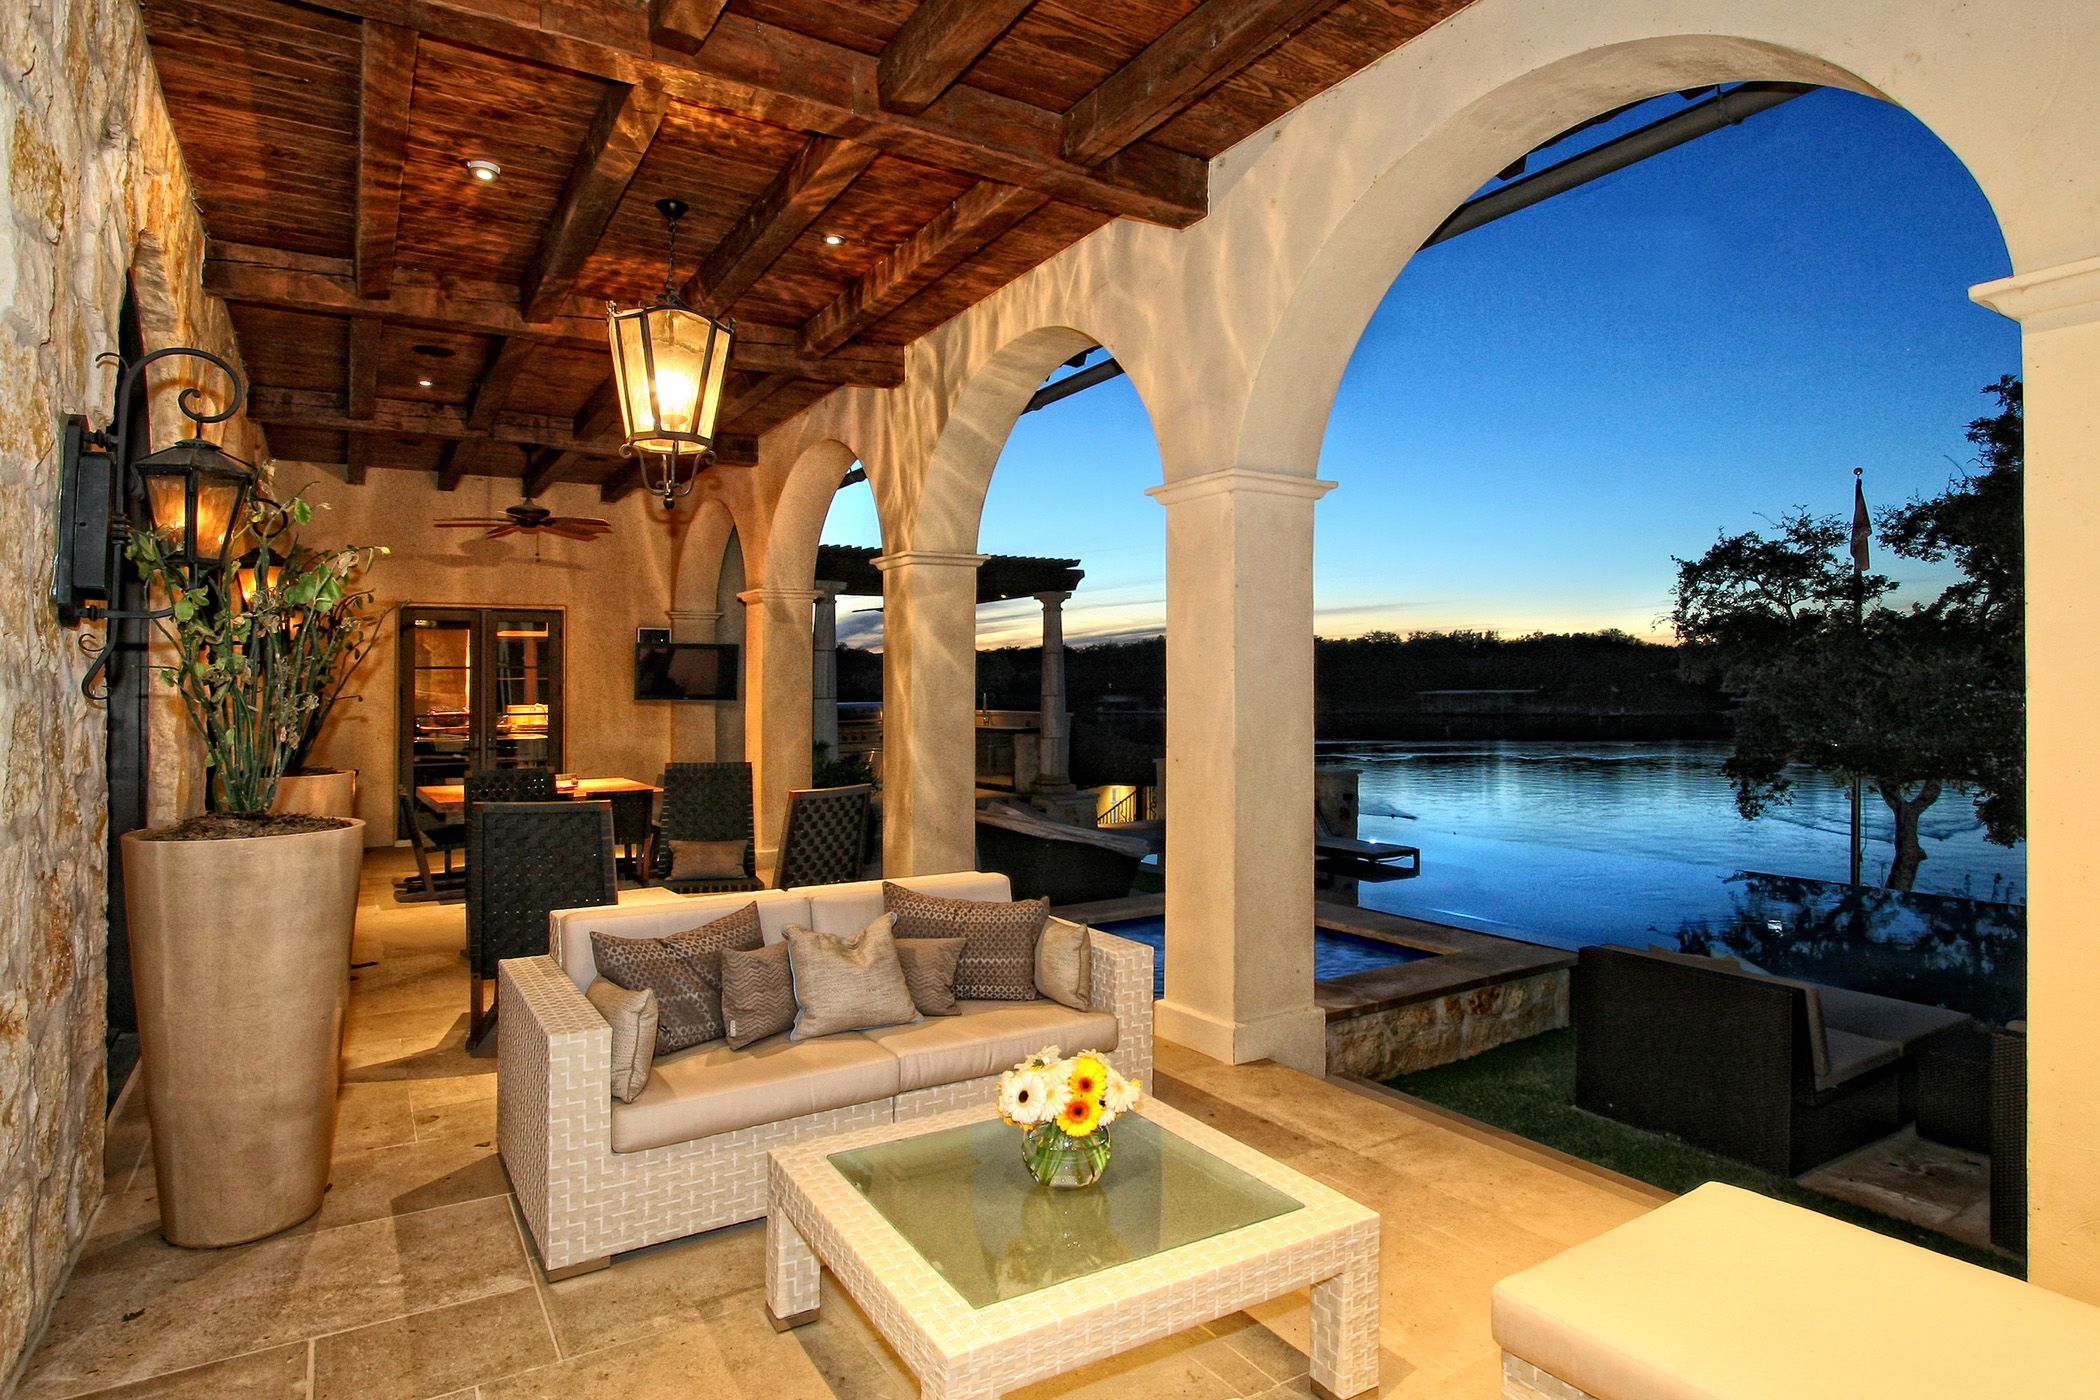 Horseshoe bay eclectic spanish lake house outdoor living for Luxury outdoor living